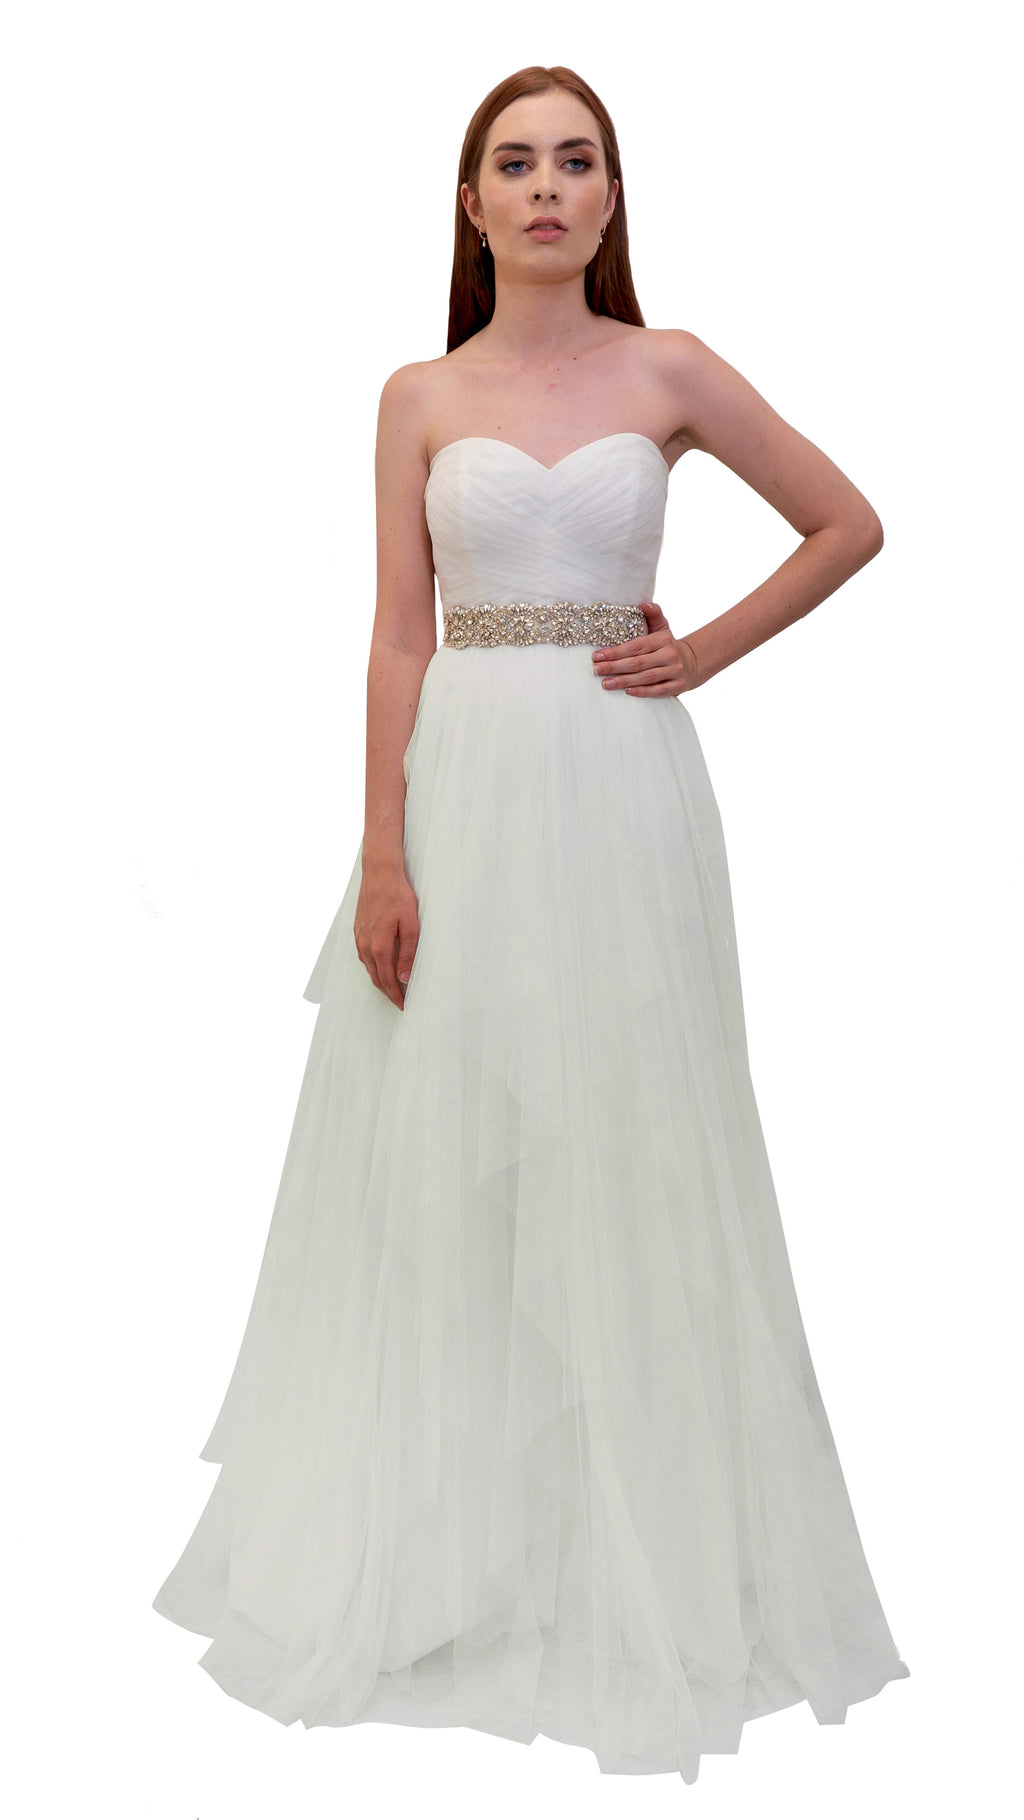 Bariano Bridal Layered Tulle Ball Gown White